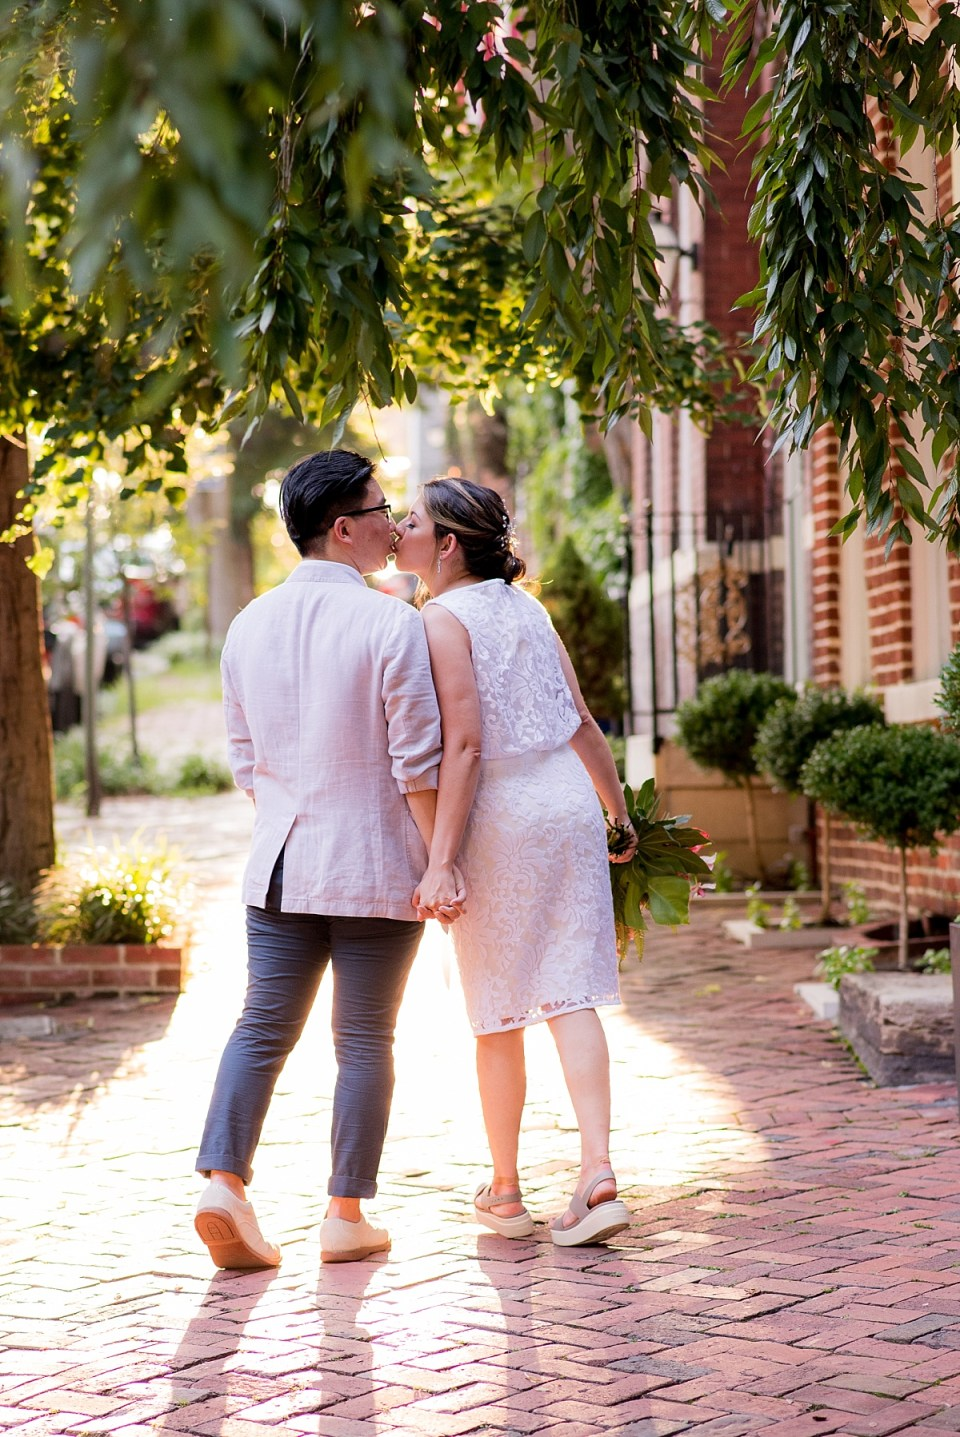 Best Wedding Photo locations in Old Town Alexandria